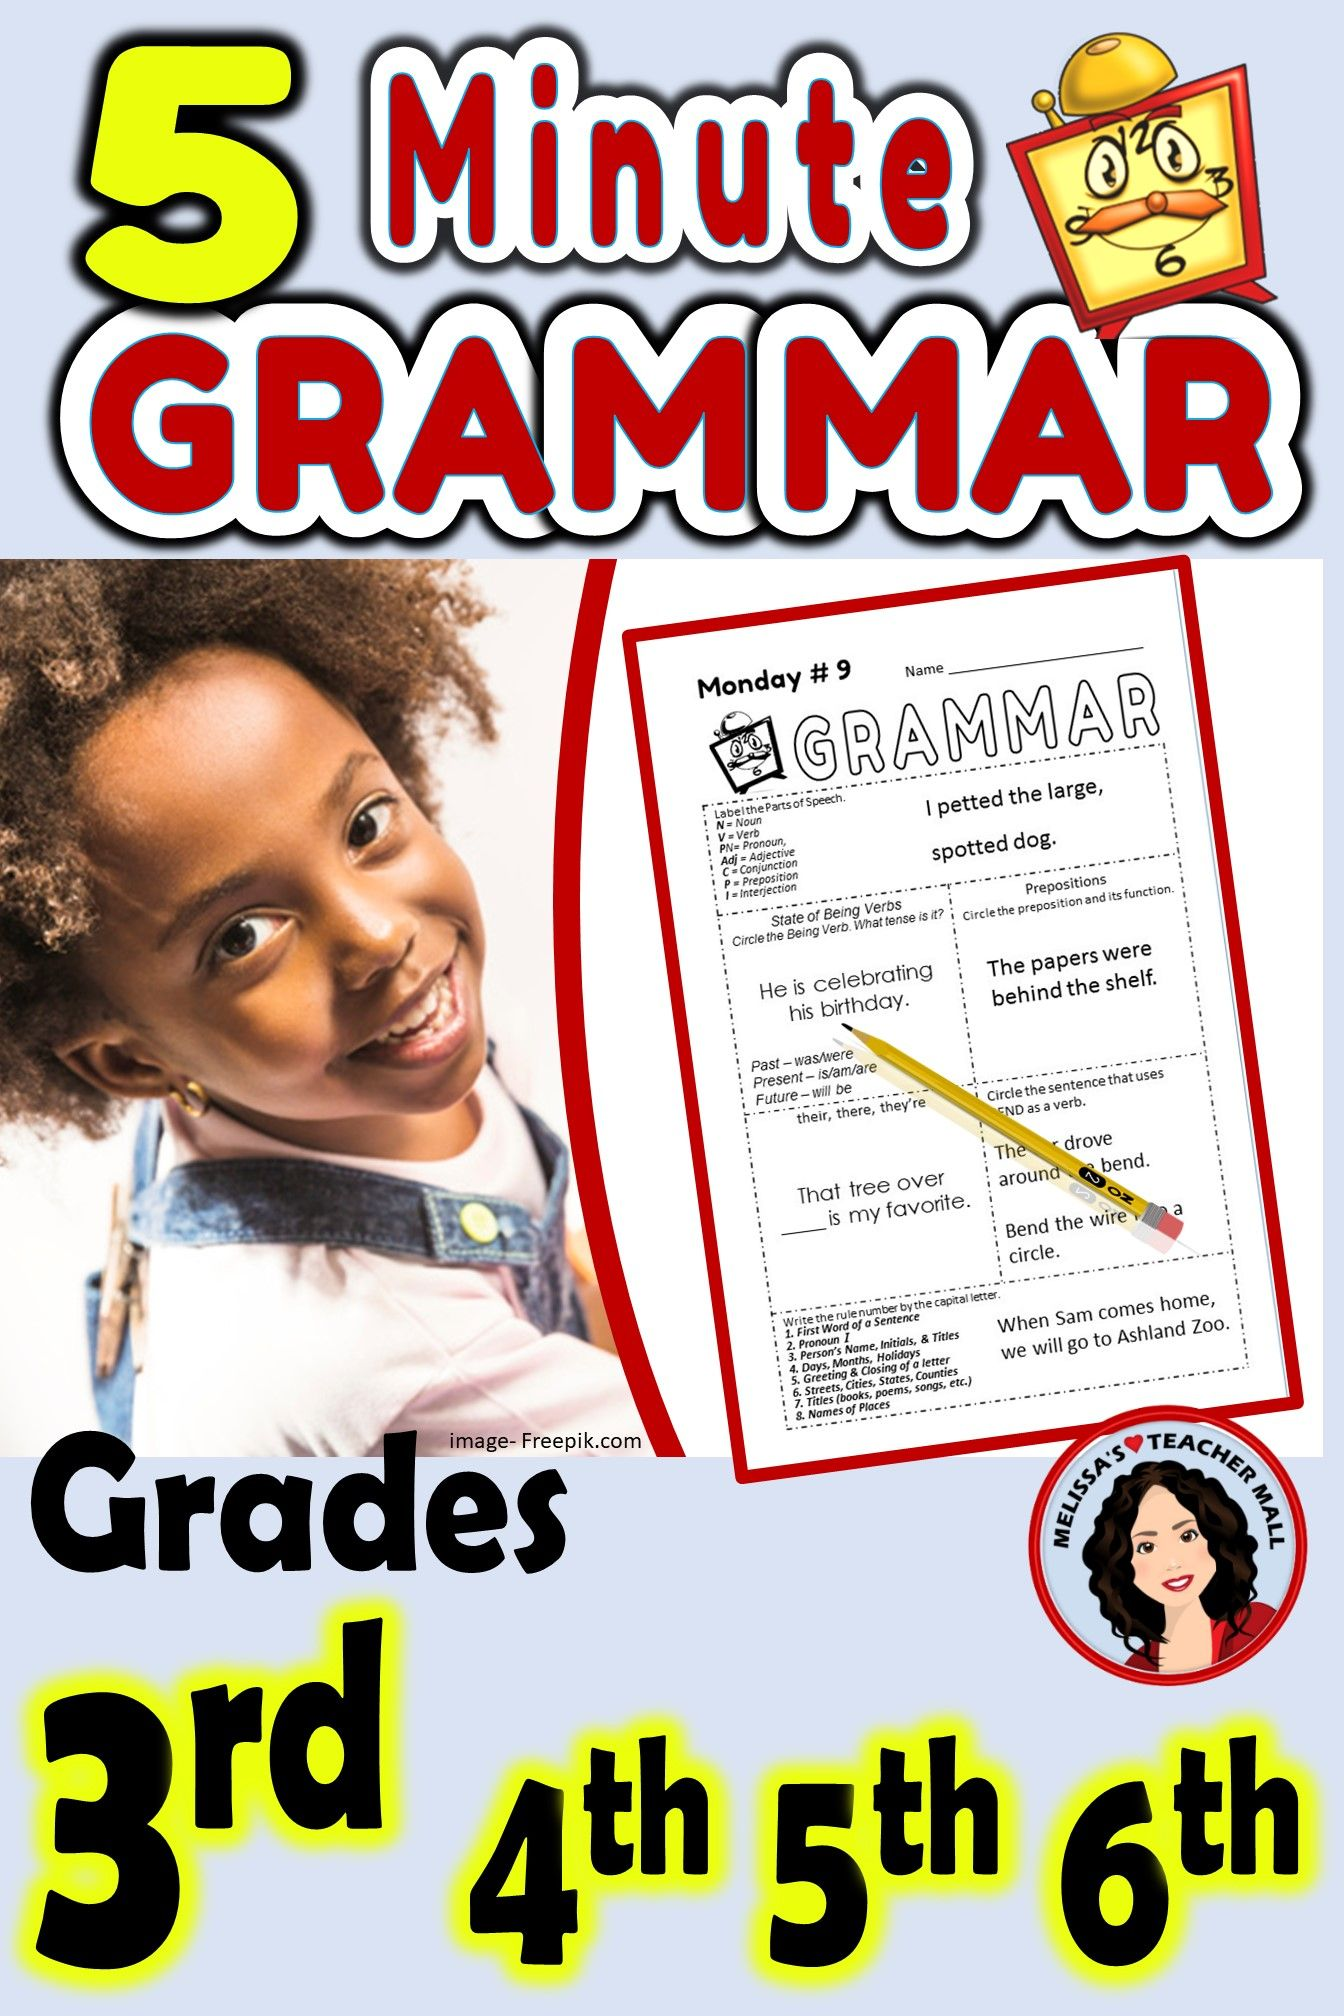 5 Minute Grammar Daily Grammar Worksheets 3rd GRADE Practice and Assessment    Grammar worksheets [ 2016 x 1344 Pixel ]